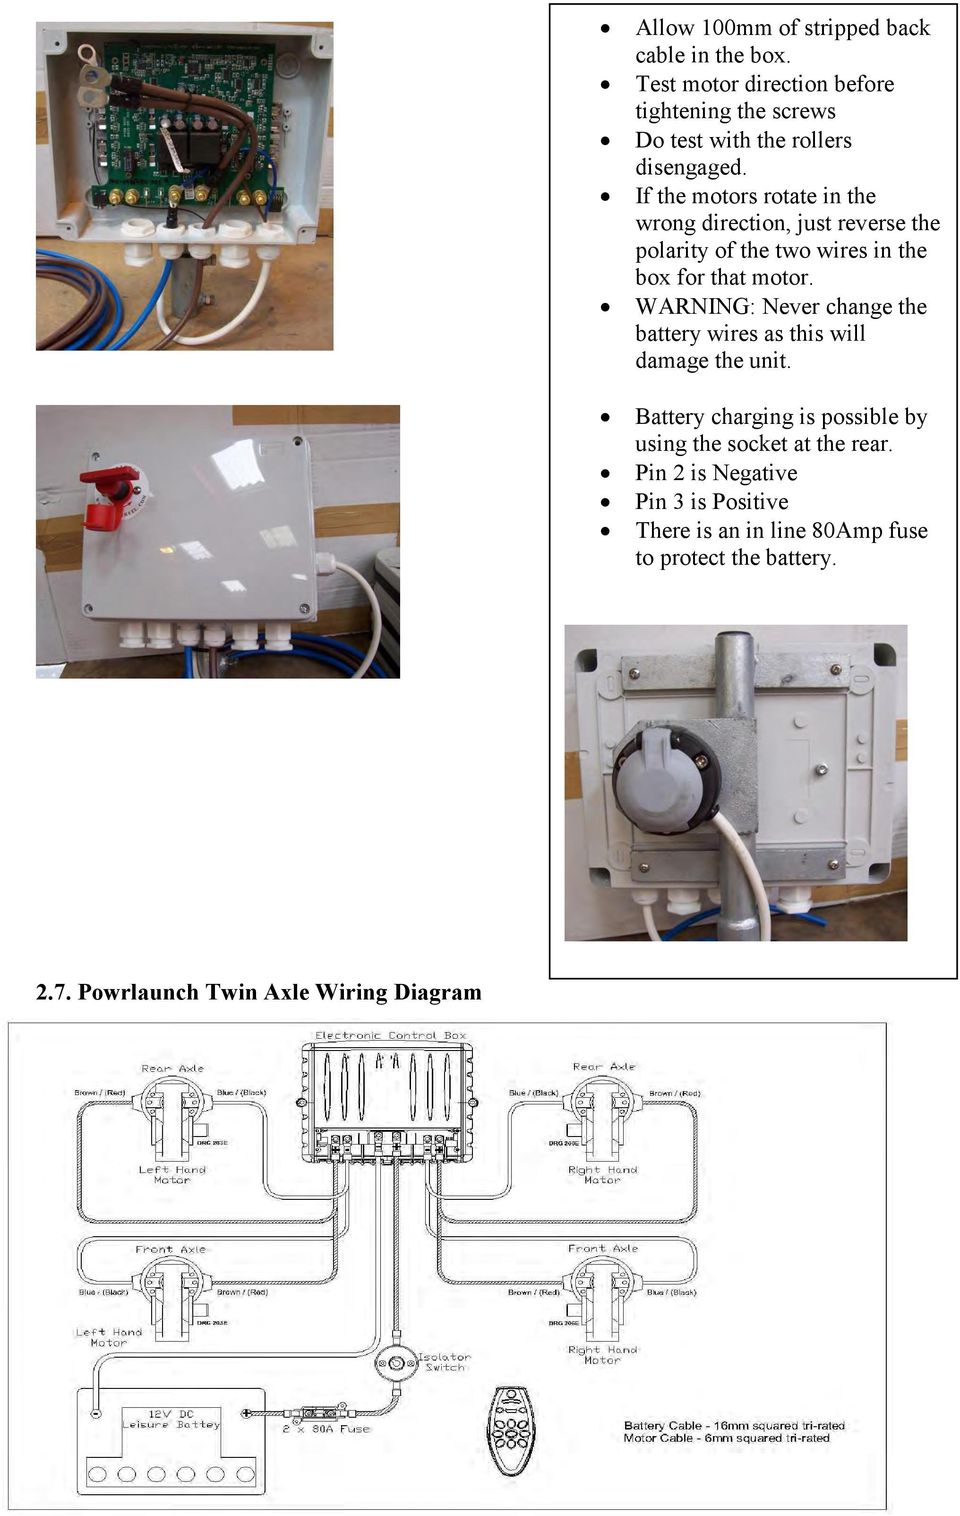 Powrwheel Limited Manufacturers Of The Uk S Only Remote Controlled Charging 12v Dc Wiring Diagram If Motors Rotate In Wrong Direction Just Reverse Polarity Two